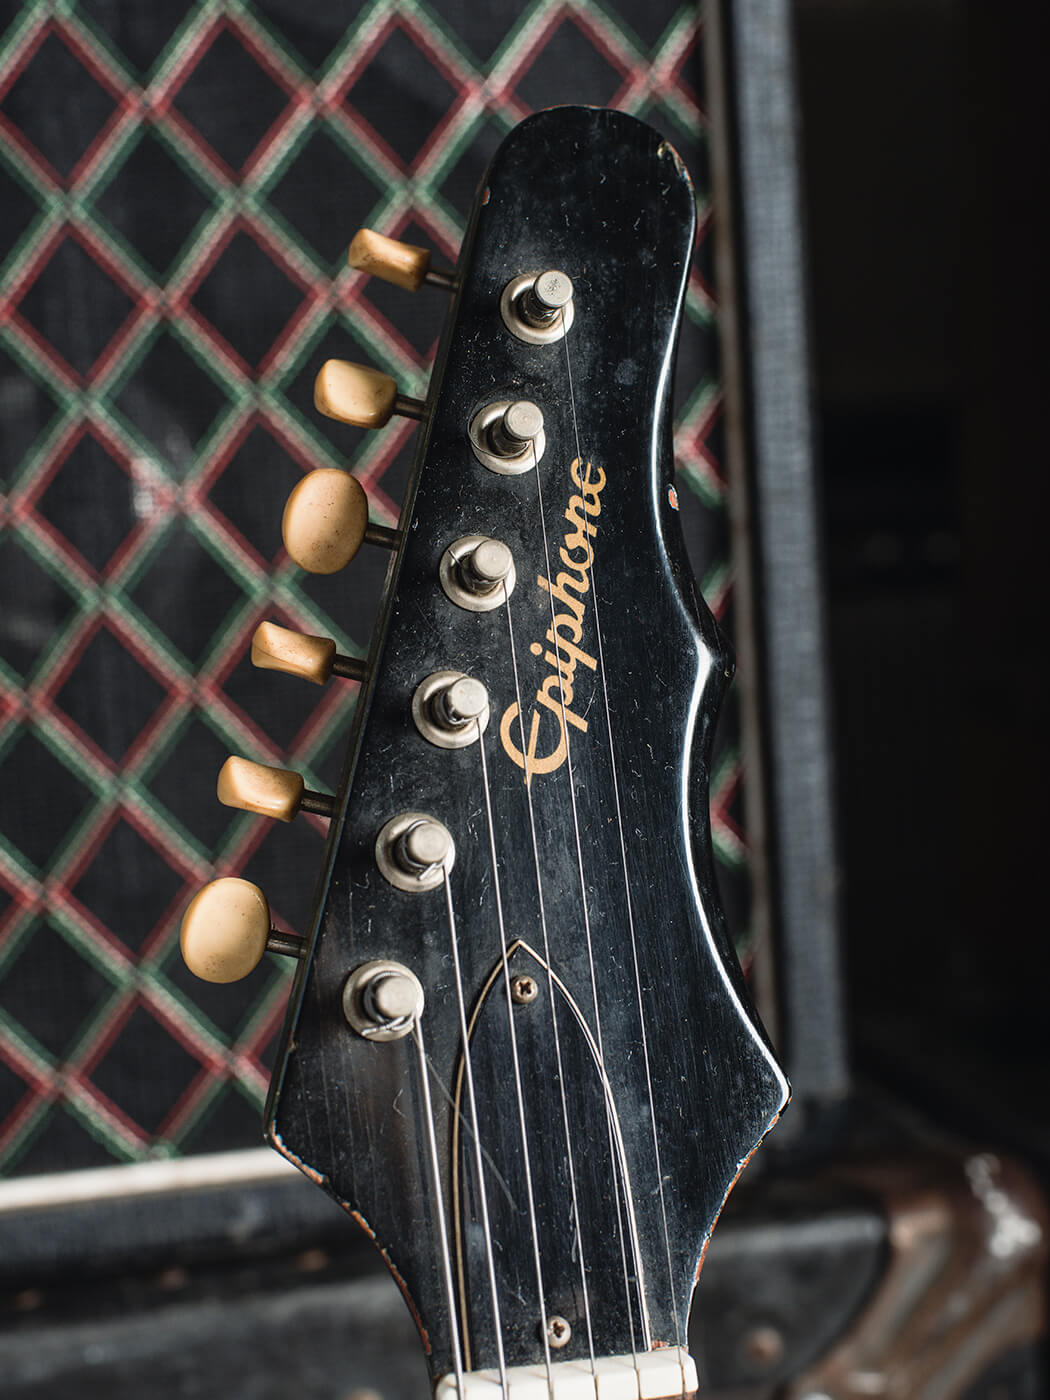 Rory Gallagher's 1963 Epiphone Coronet